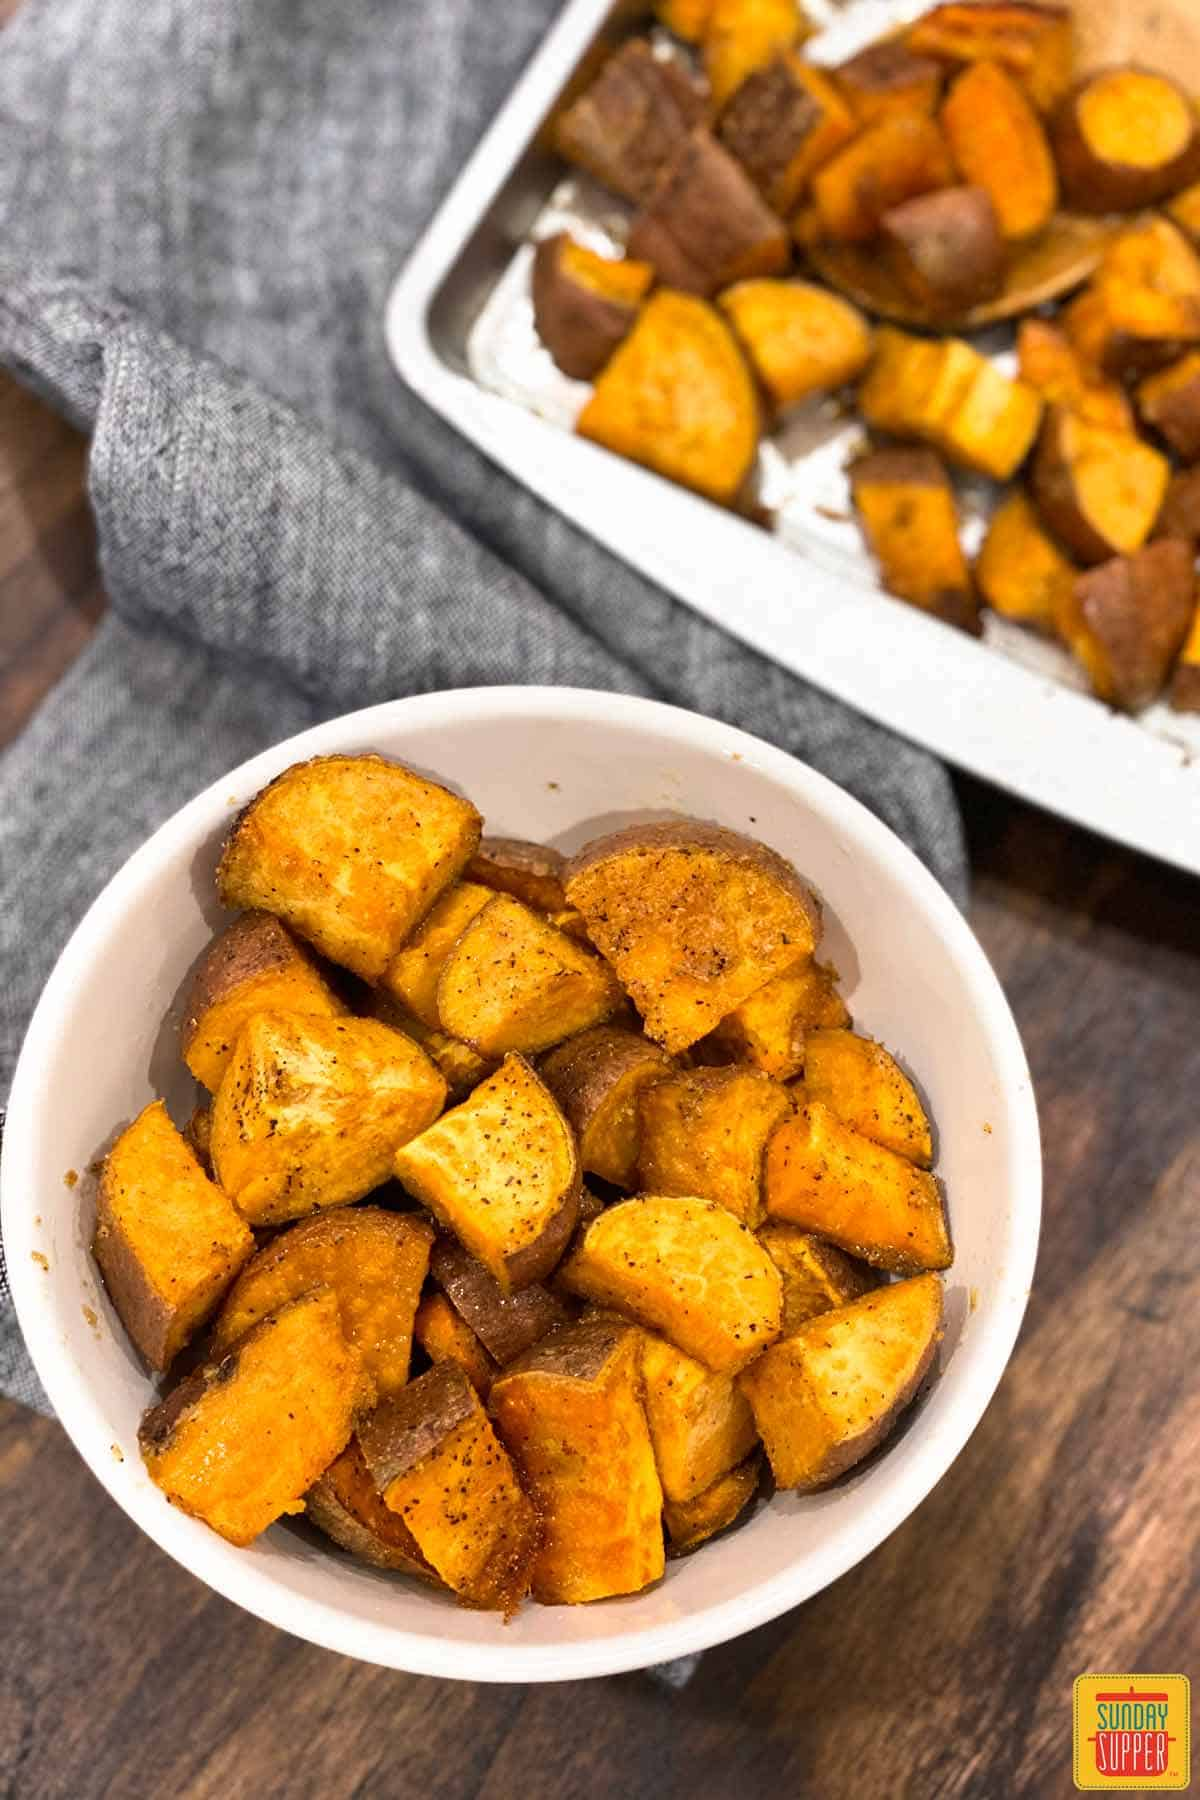 Roasted sweet potatoes in a white bowl and on a baking sheet